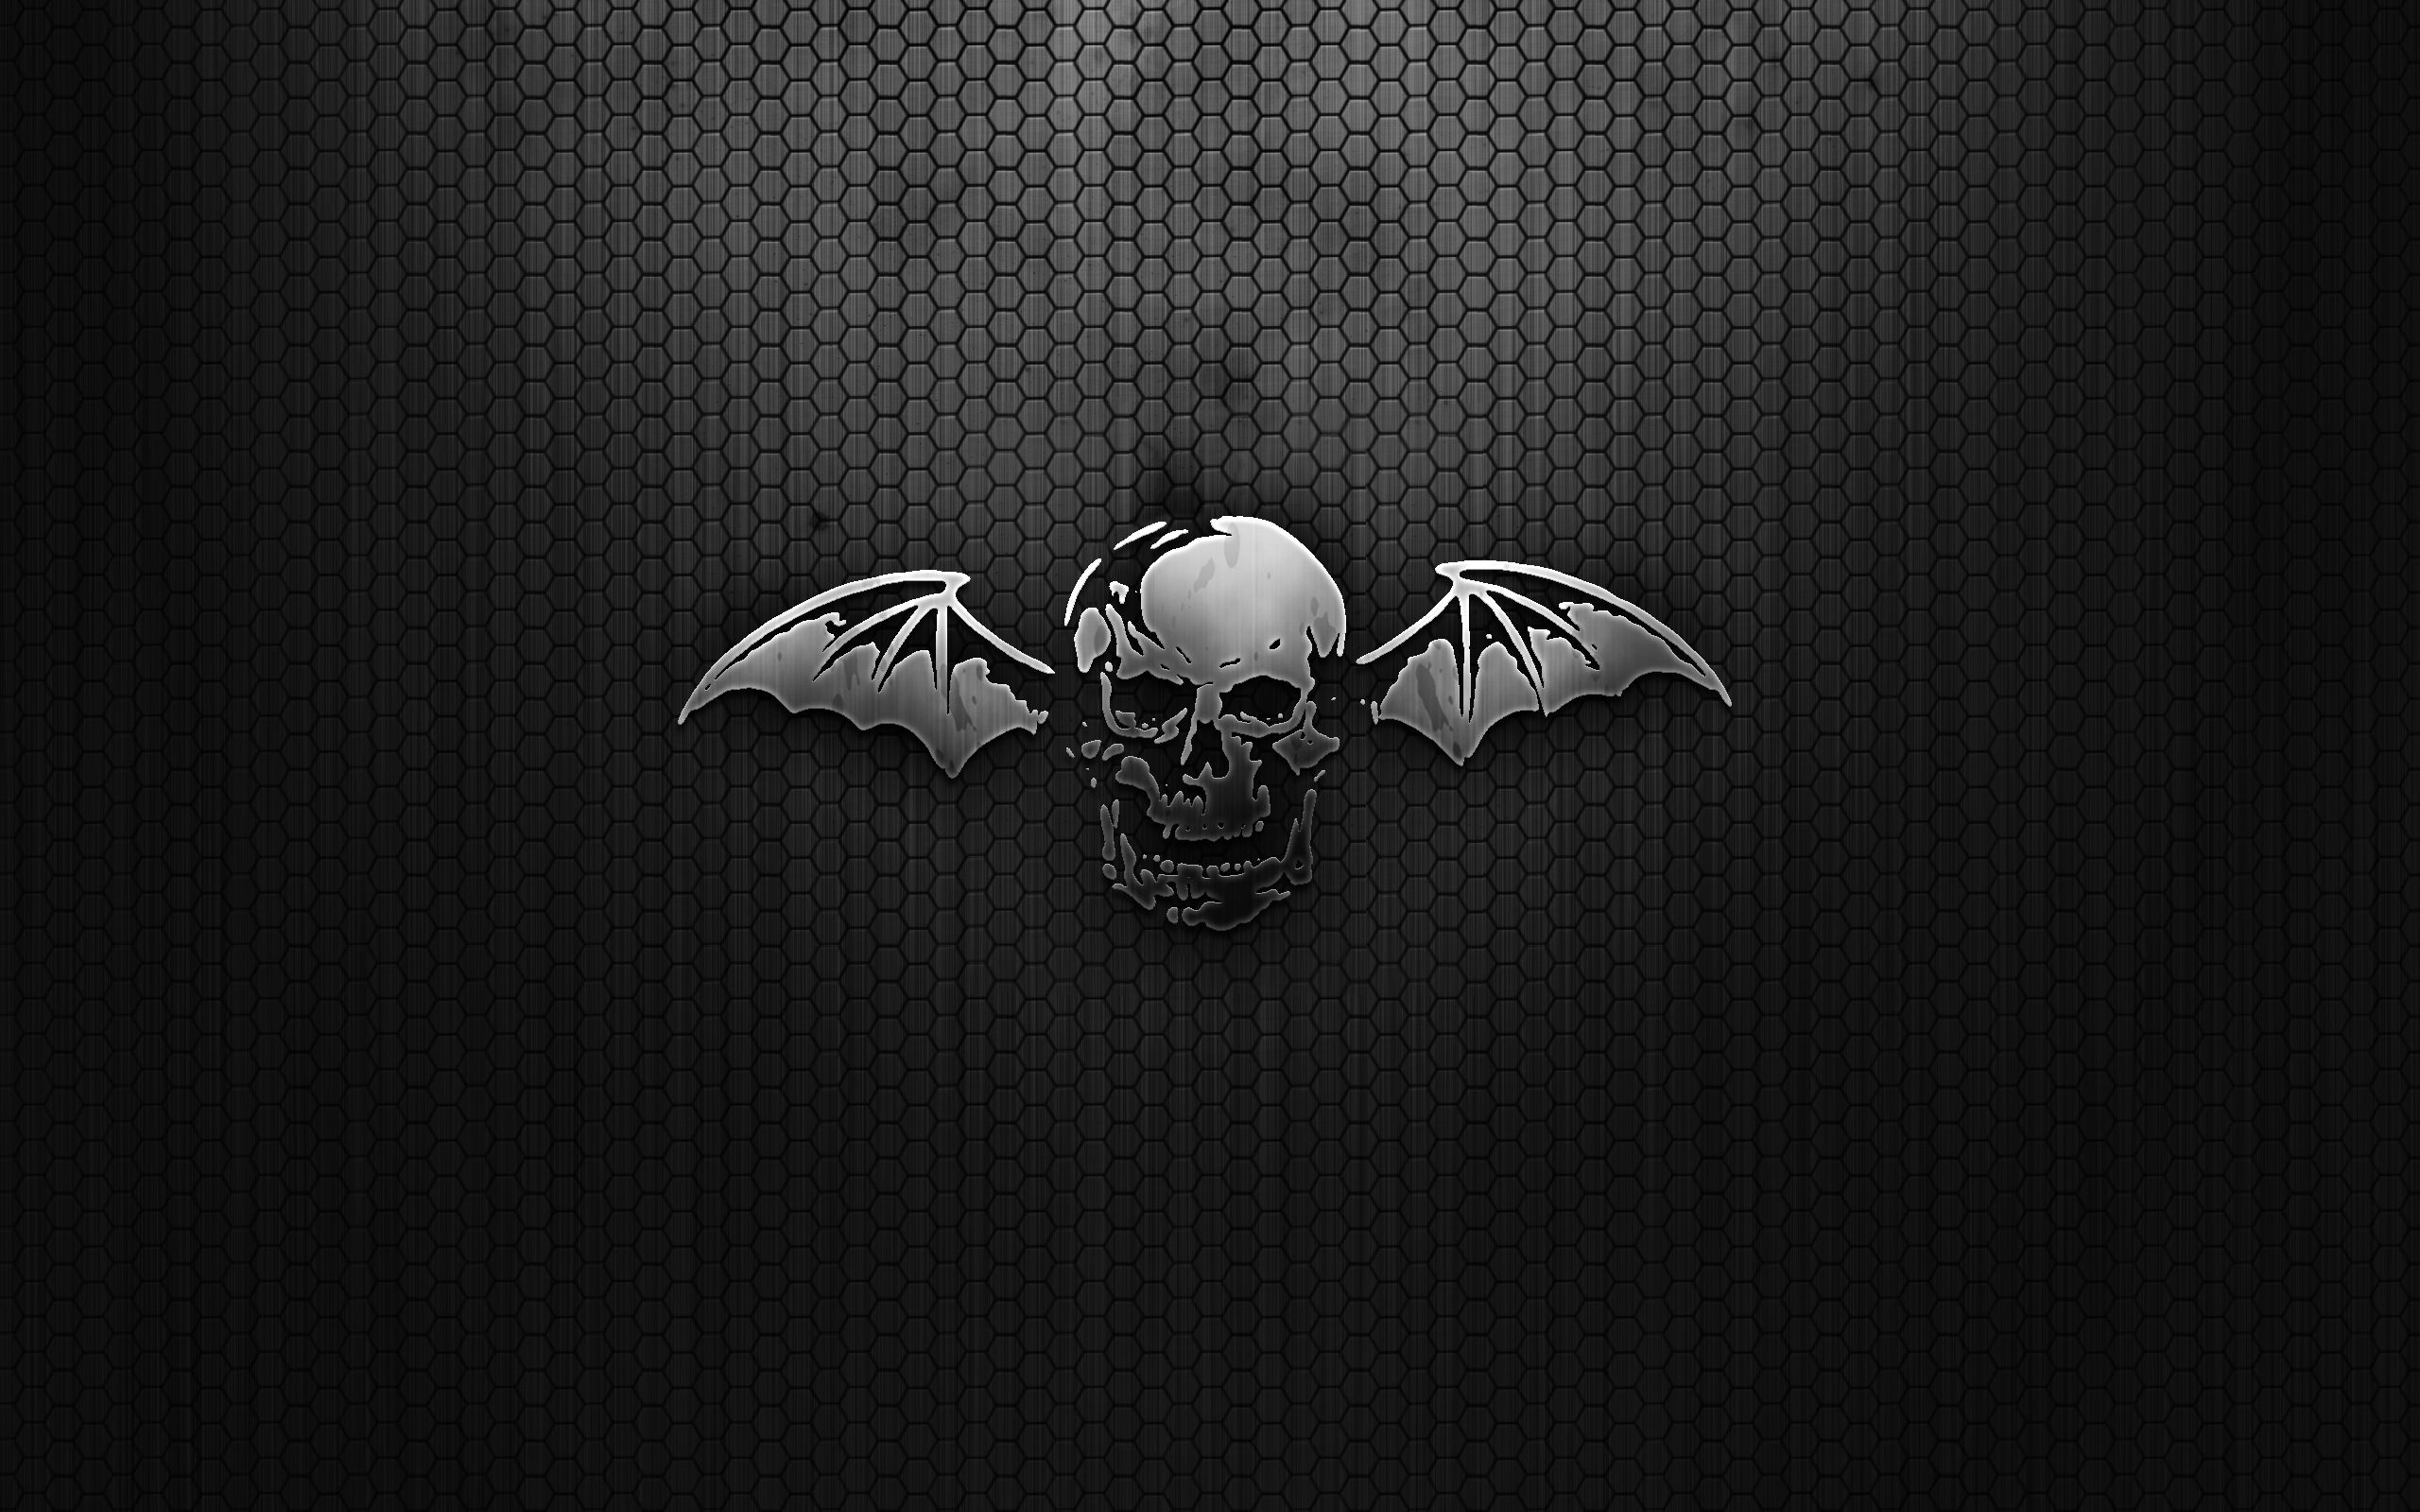 Avenged Sevenfold Wallpaper Hd Dengan Gambar Wallpaper Ponsel